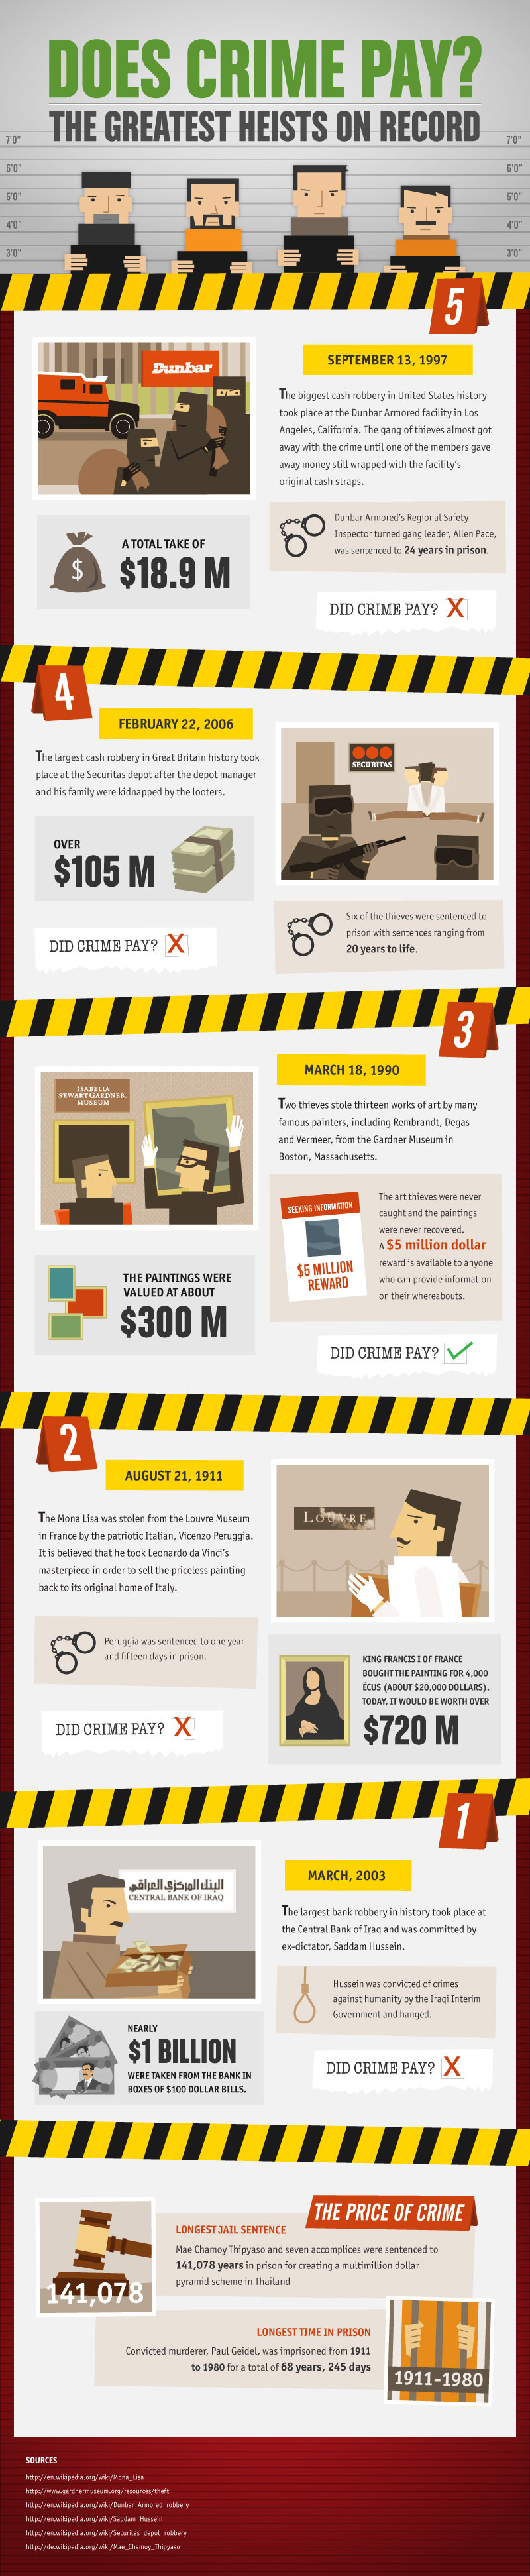 Does Crime Pay - Infographic